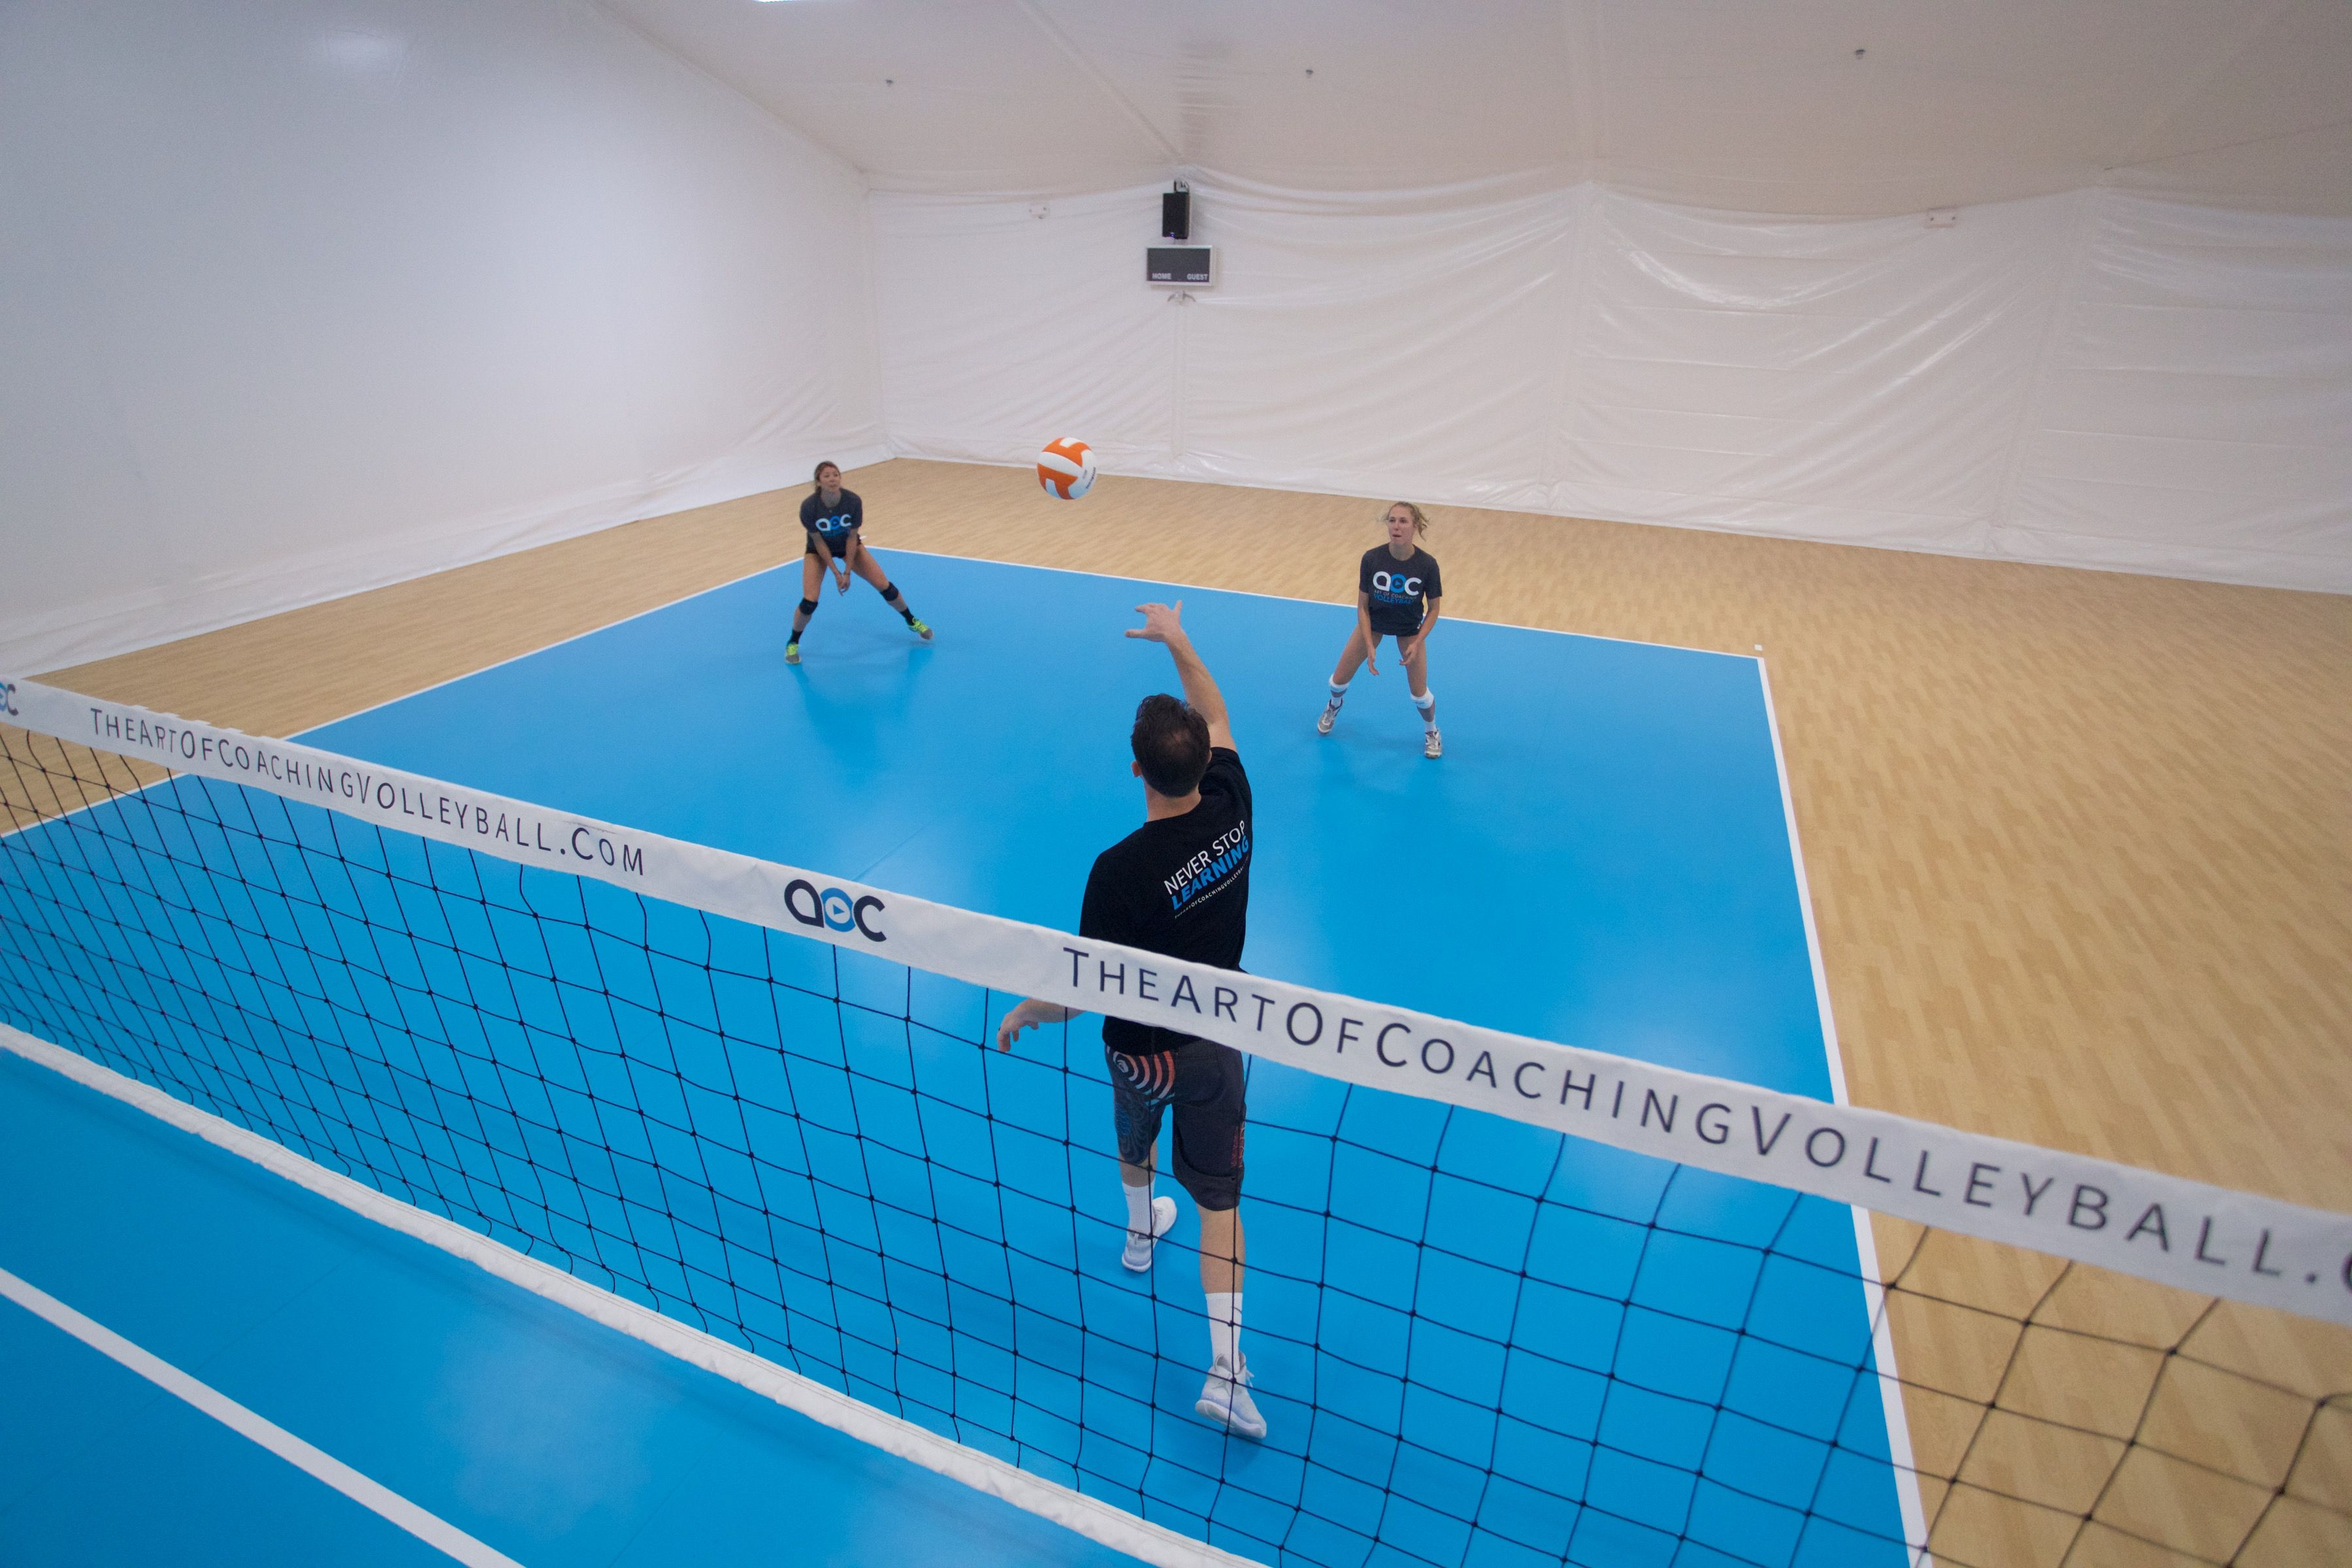 Custom Top Net Tape For The Art Of Coaching Volleyball Outdoor Volleyball Net Coaching Volleyball Volleyball Net